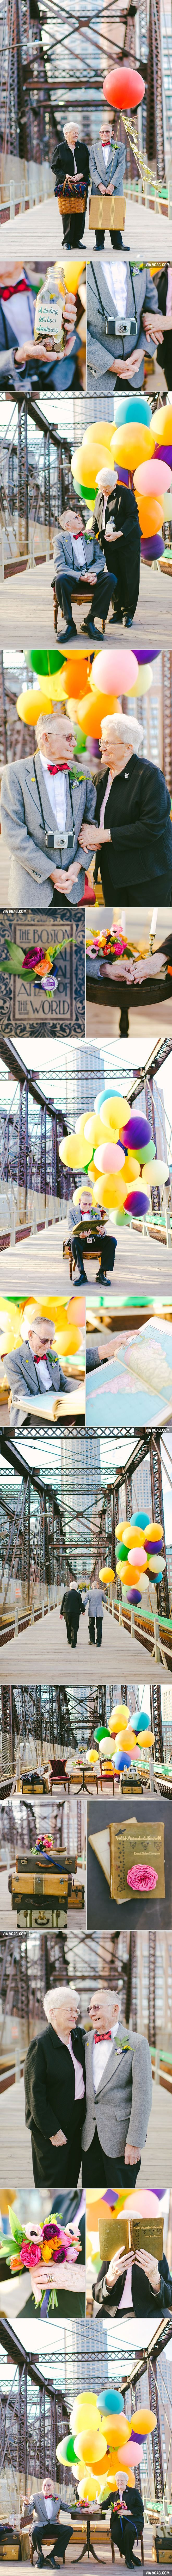 "These Couple Celebrates Their 61st Anniversary With ""Up"" Inspired Photoshoot"